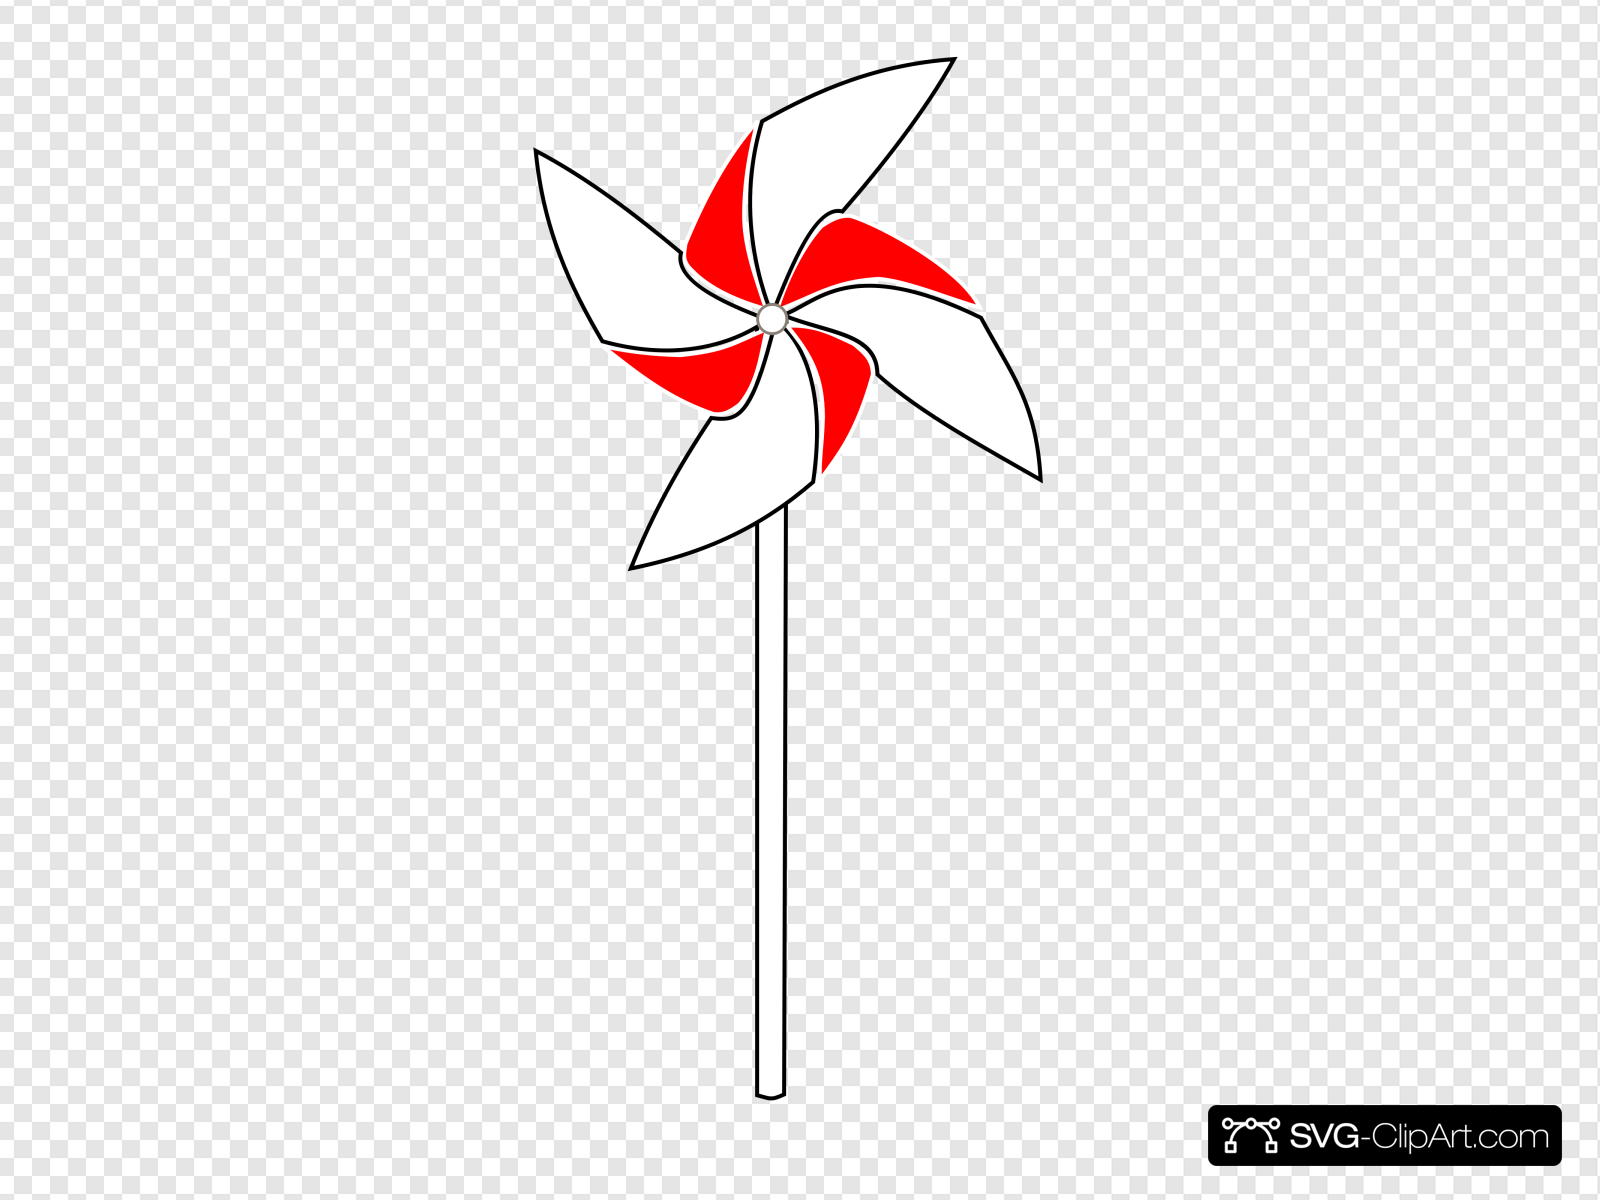 Red And White Pinwheel On Blank Background Clip art, Icon.